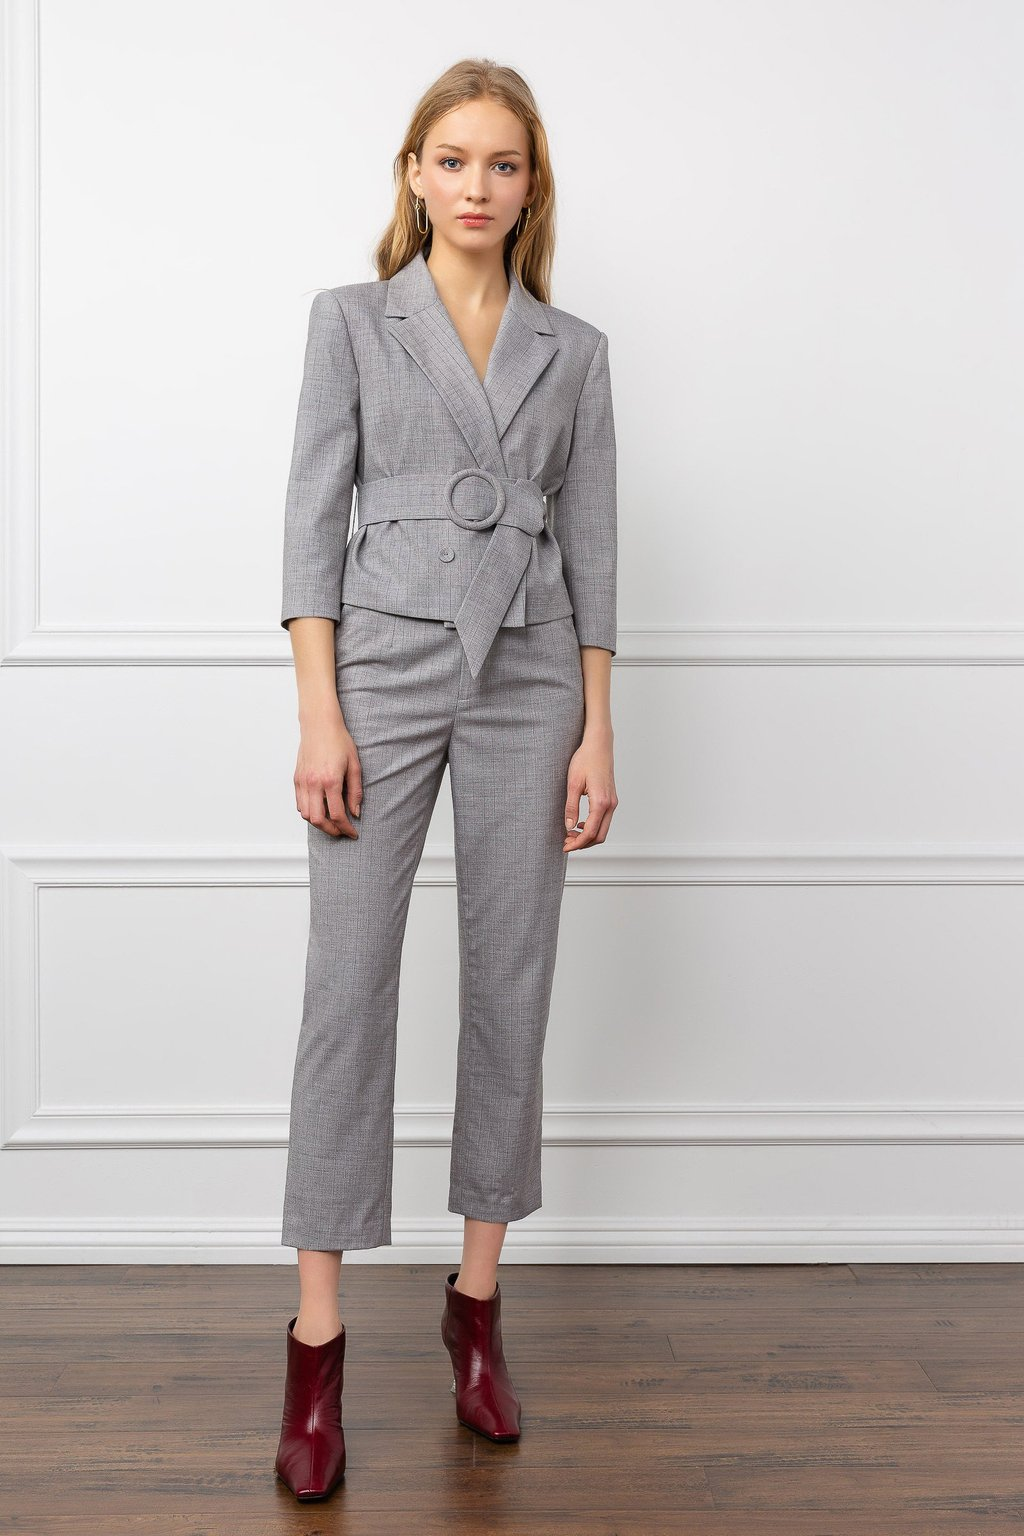 Carmen Blazer Grey suit set co-ord for women by J.ING fashion clothing